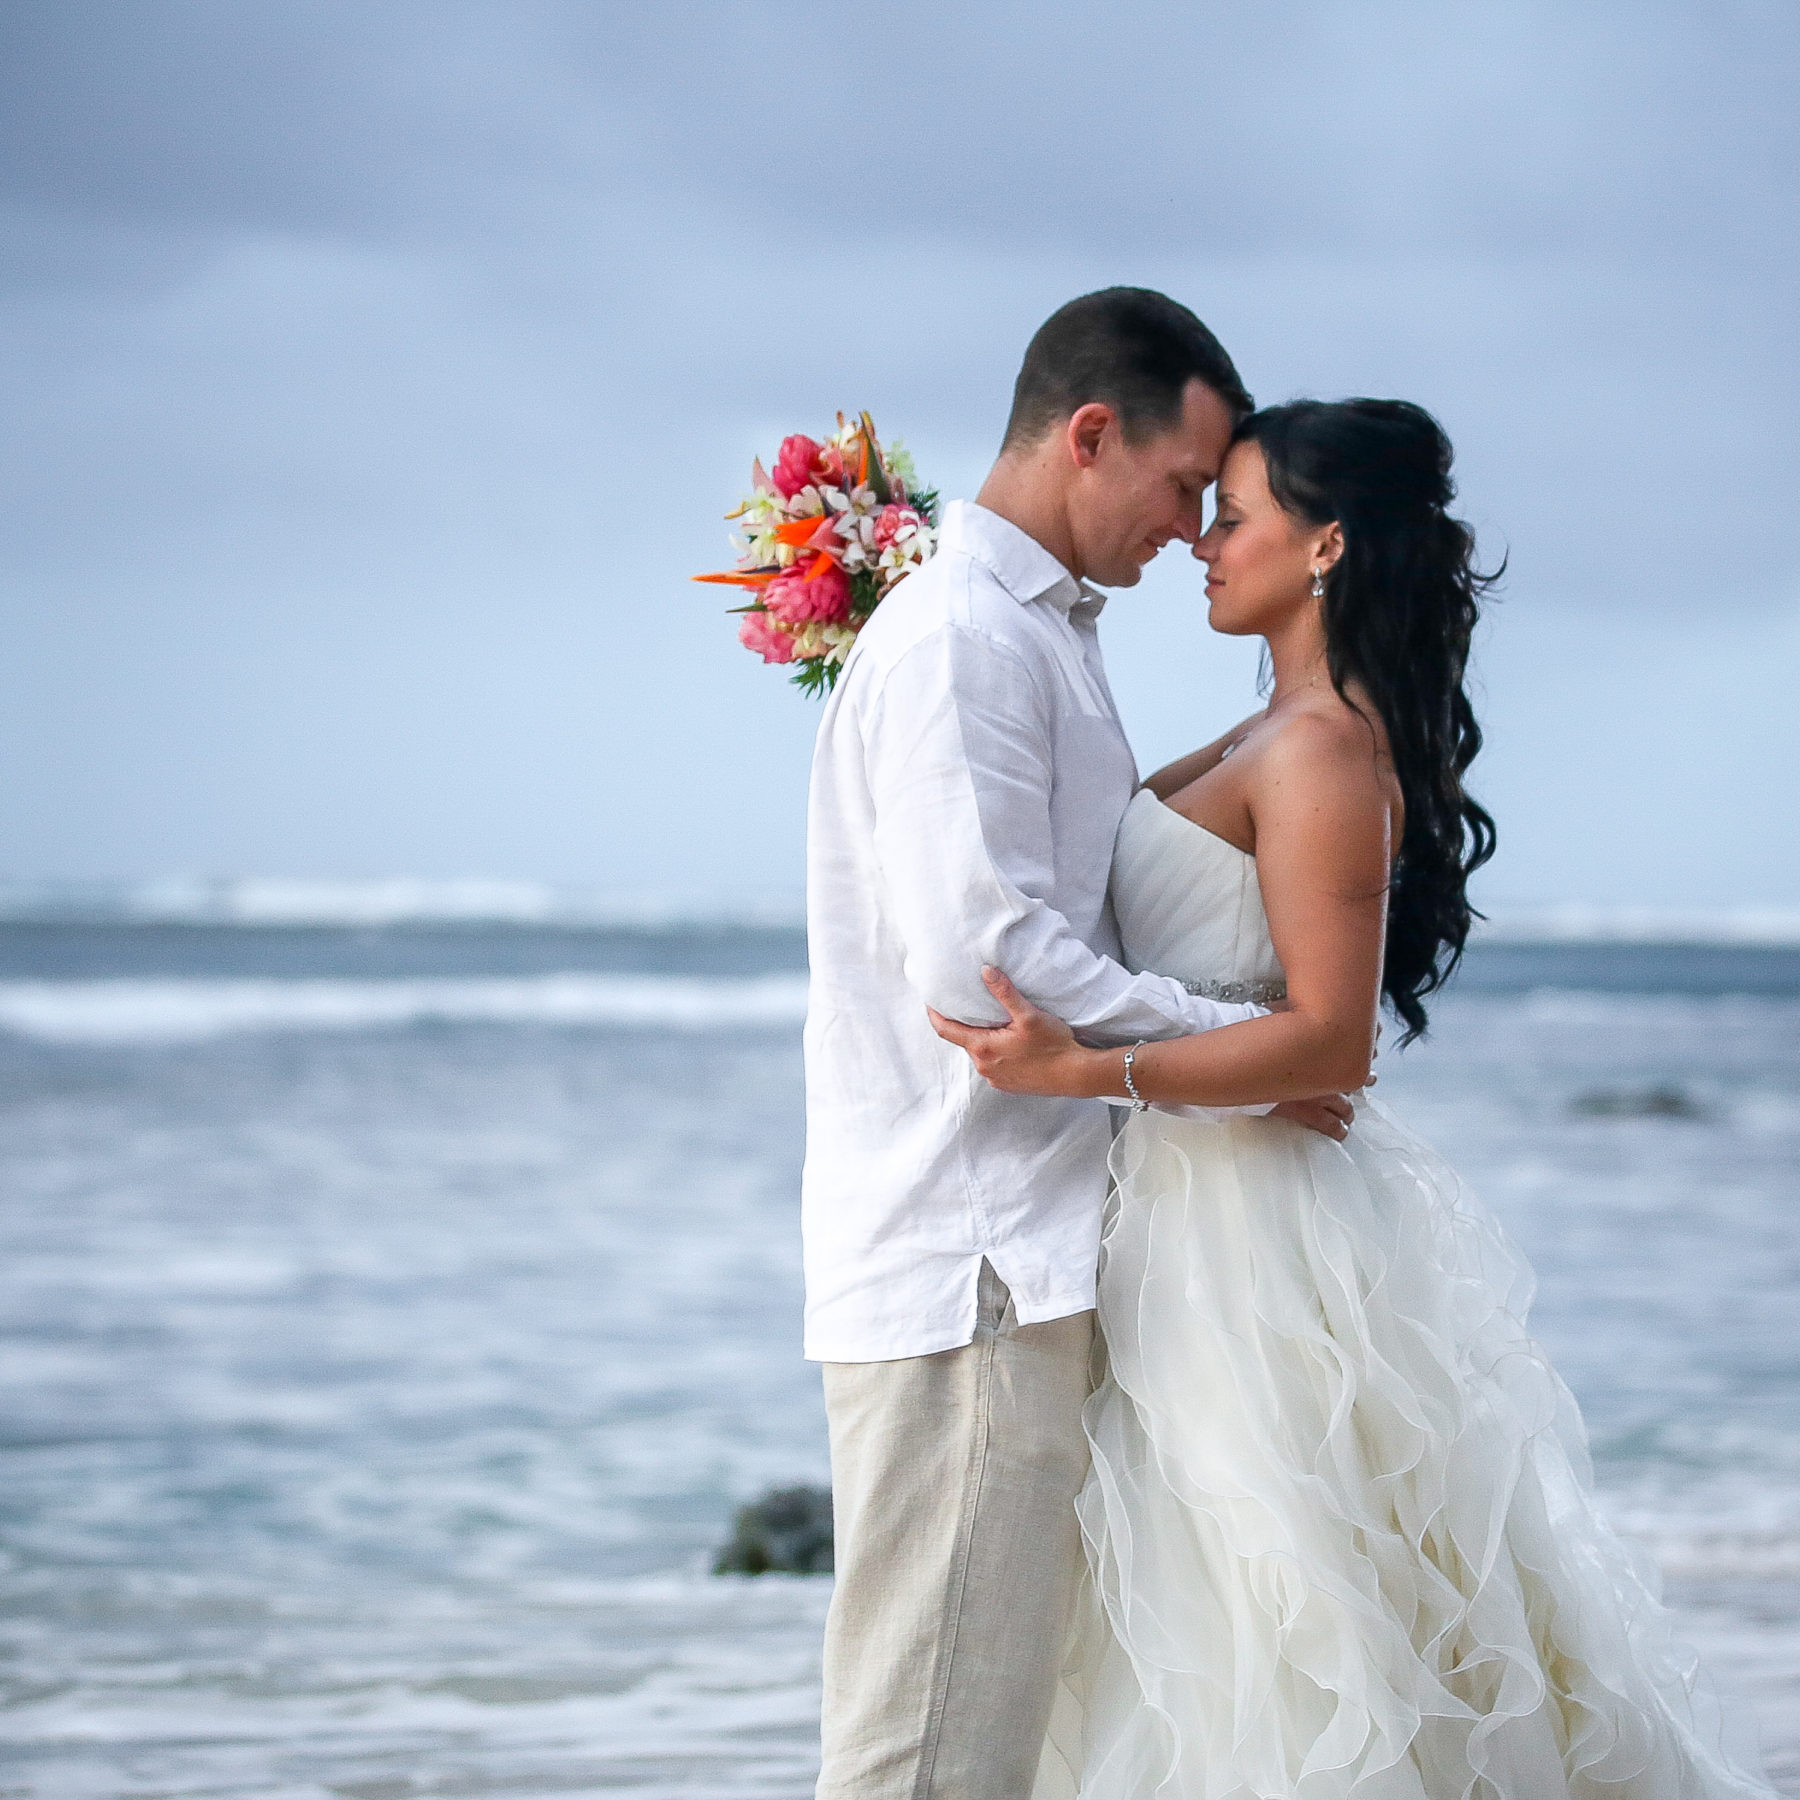 Kauai Wedding by the Ocean